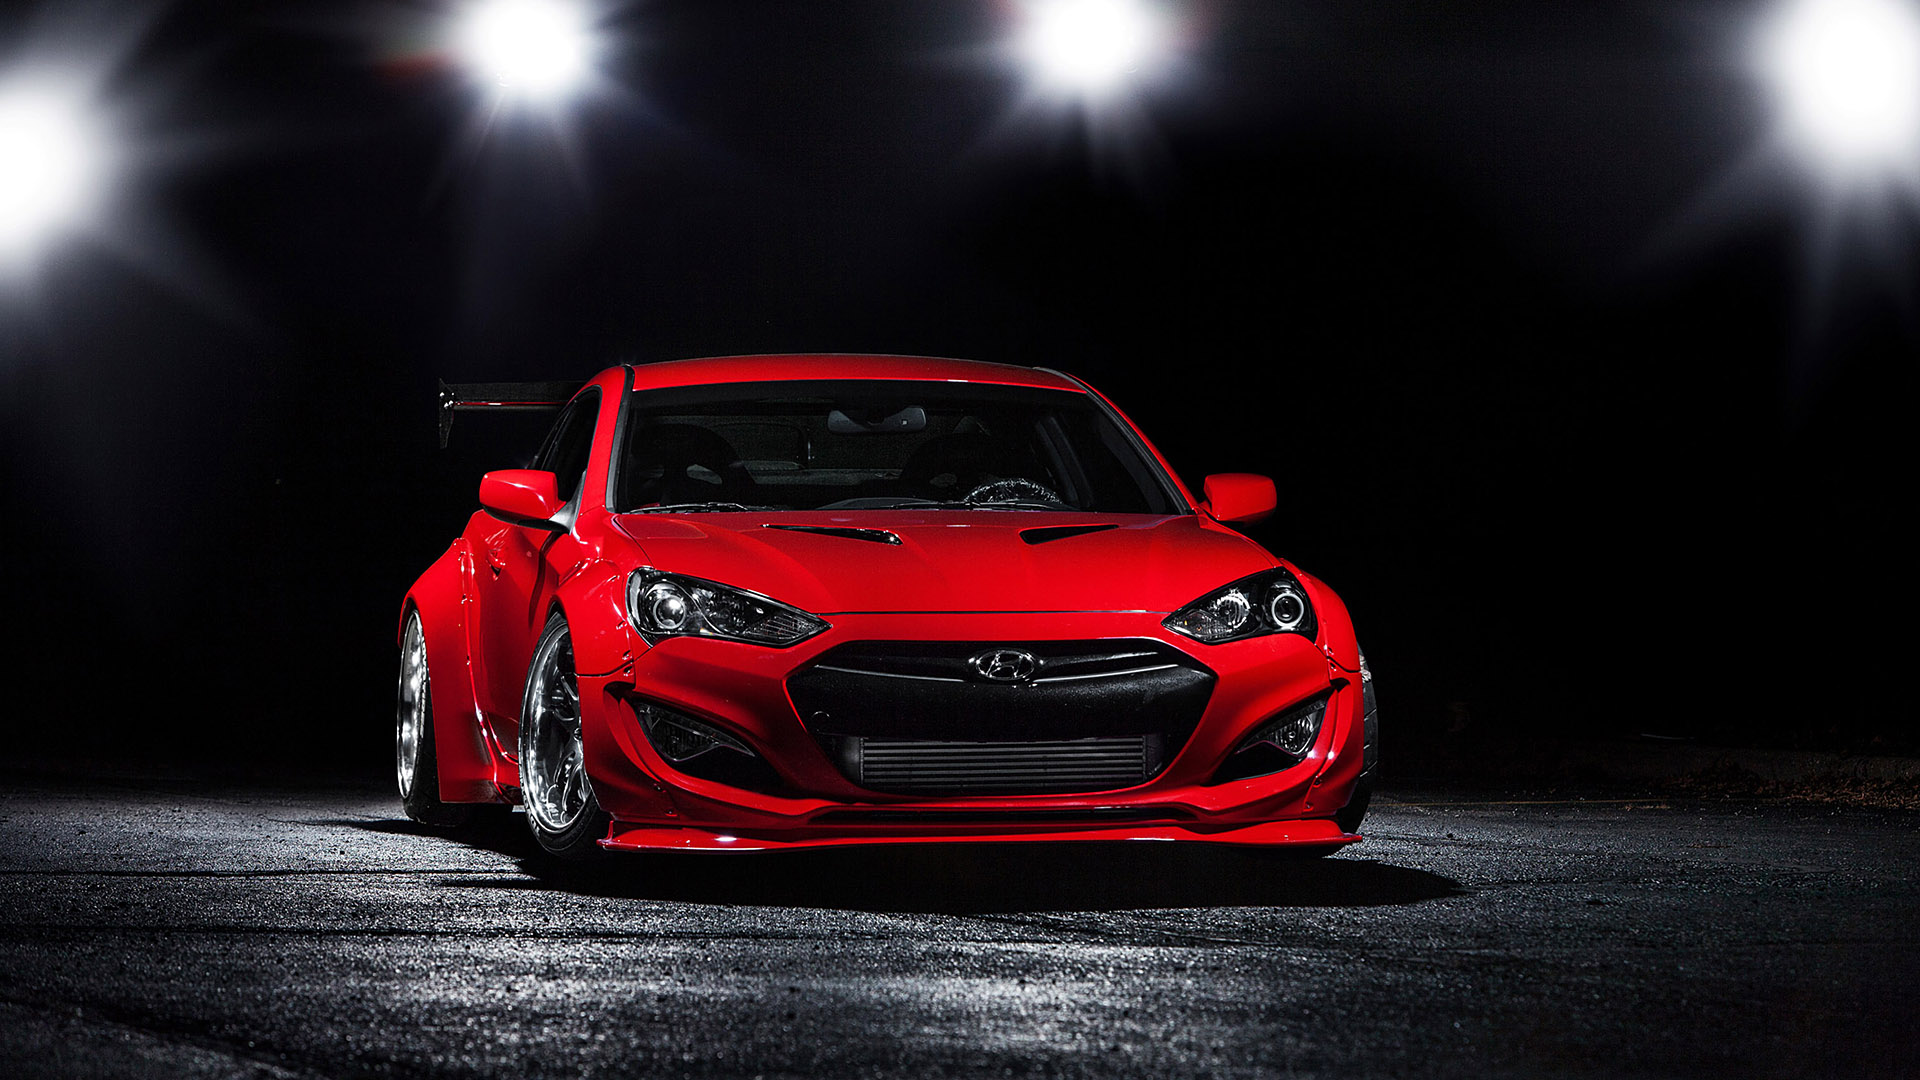 2014 BTR Hyundai Genesis Coupe Wallpapers HD Images   WSupercars 1920x1080